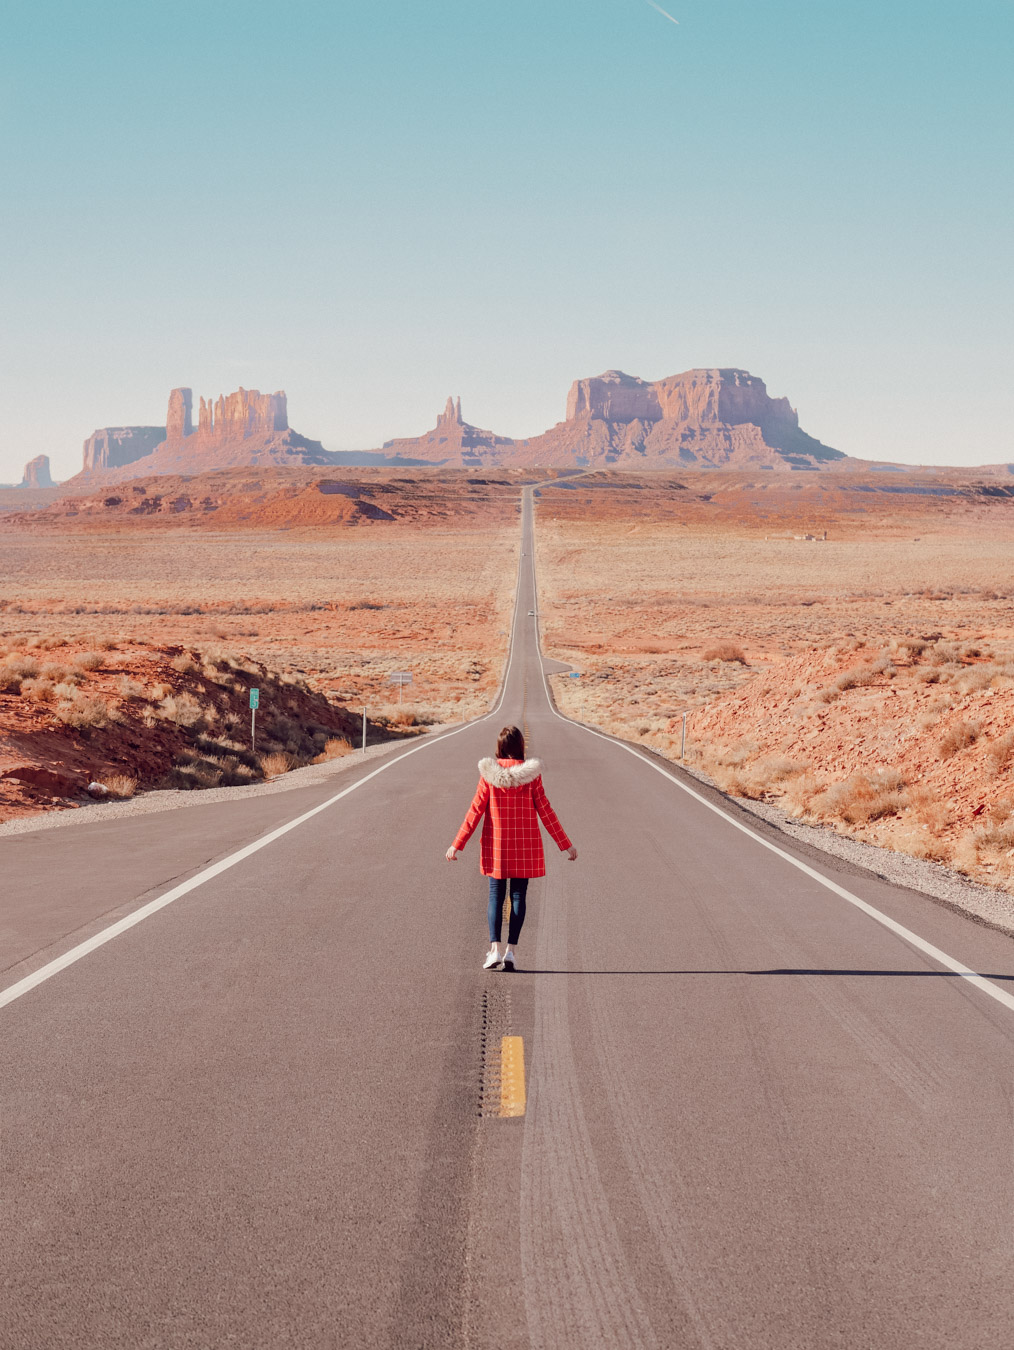 Blog-Mode-And-the-City-Lifestyle-voyage-roadtrip-USA-cote-ouest-grand-canyon-monument-valley-3